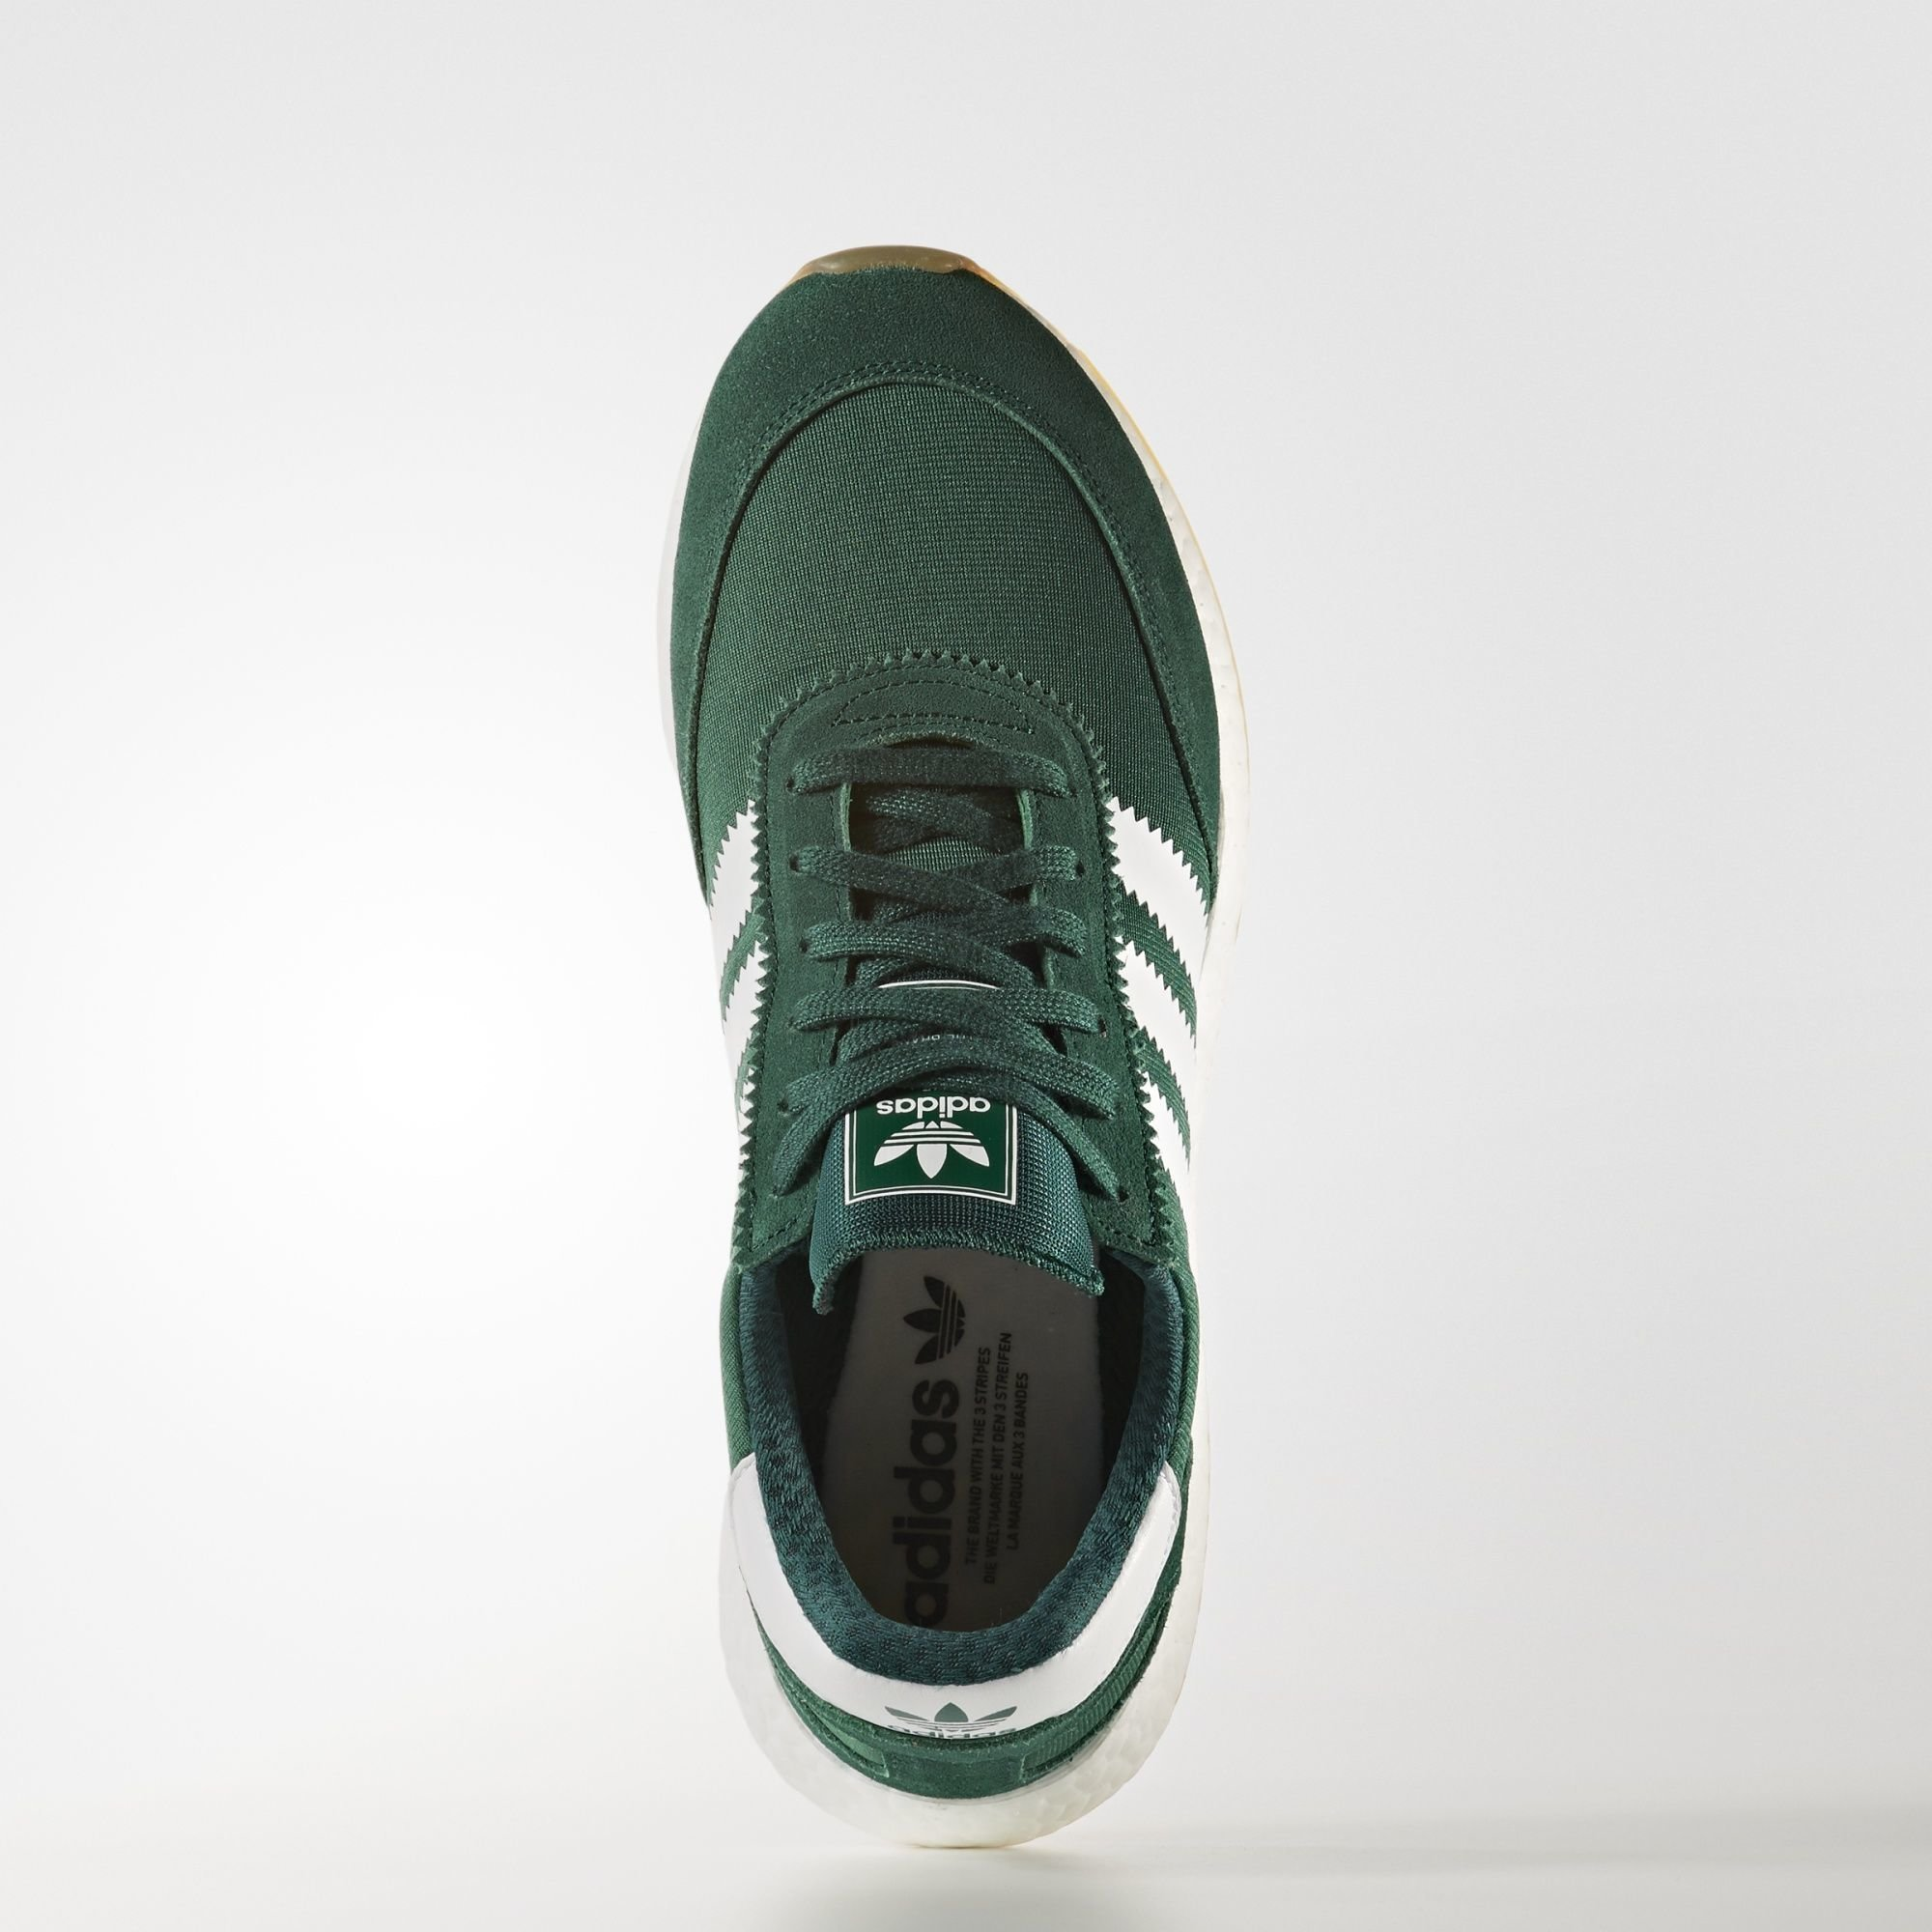 adidas Iniki Runner Boost Green White (BY9726)